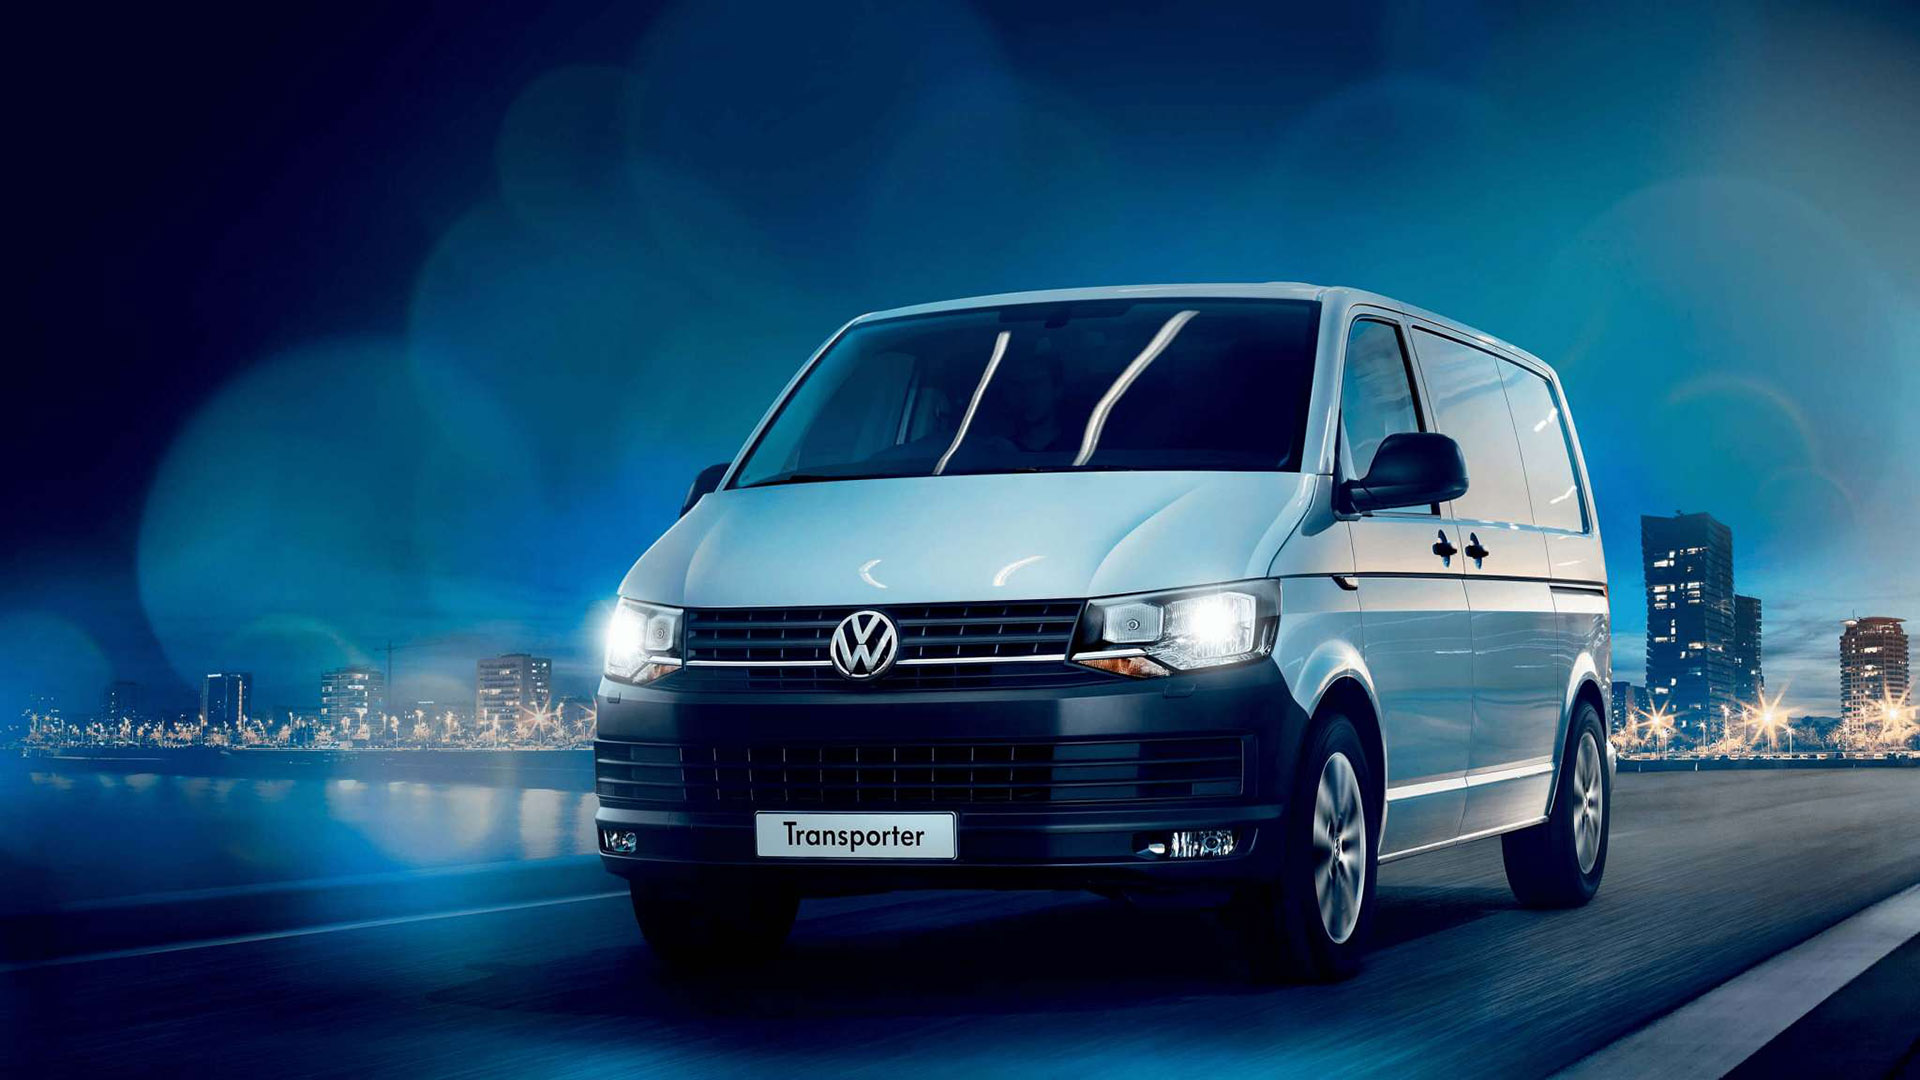 A lot goes into a Volkswagen Transporter. Image